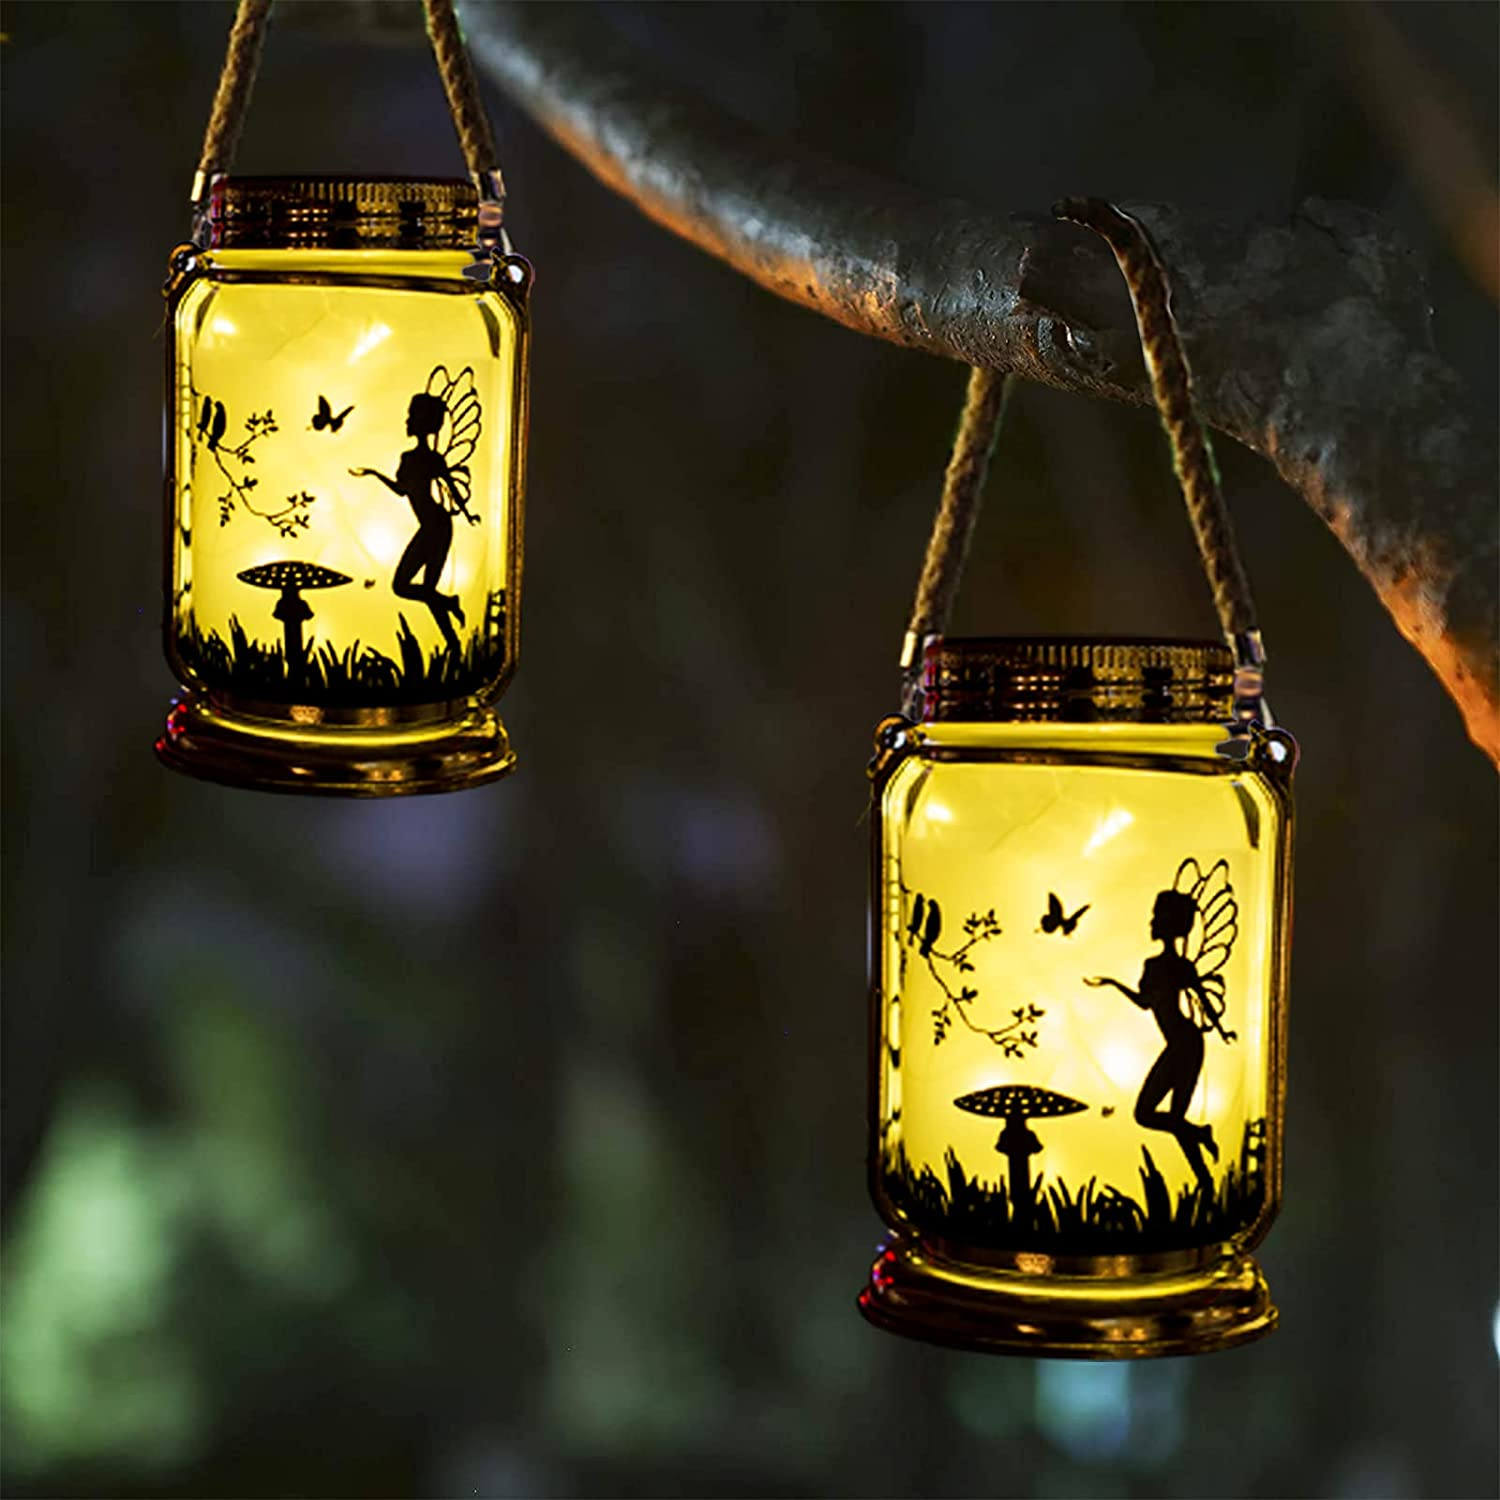 Vcdsoy Solar Fairy Lantern Patio Outdoor Decorations- 2 Pack Solar Outdoor Lanterns Fairies Gifts Hanging Lamp Frosted Glass Jar with Stake for Yard Garden Clearance Patio Lawn